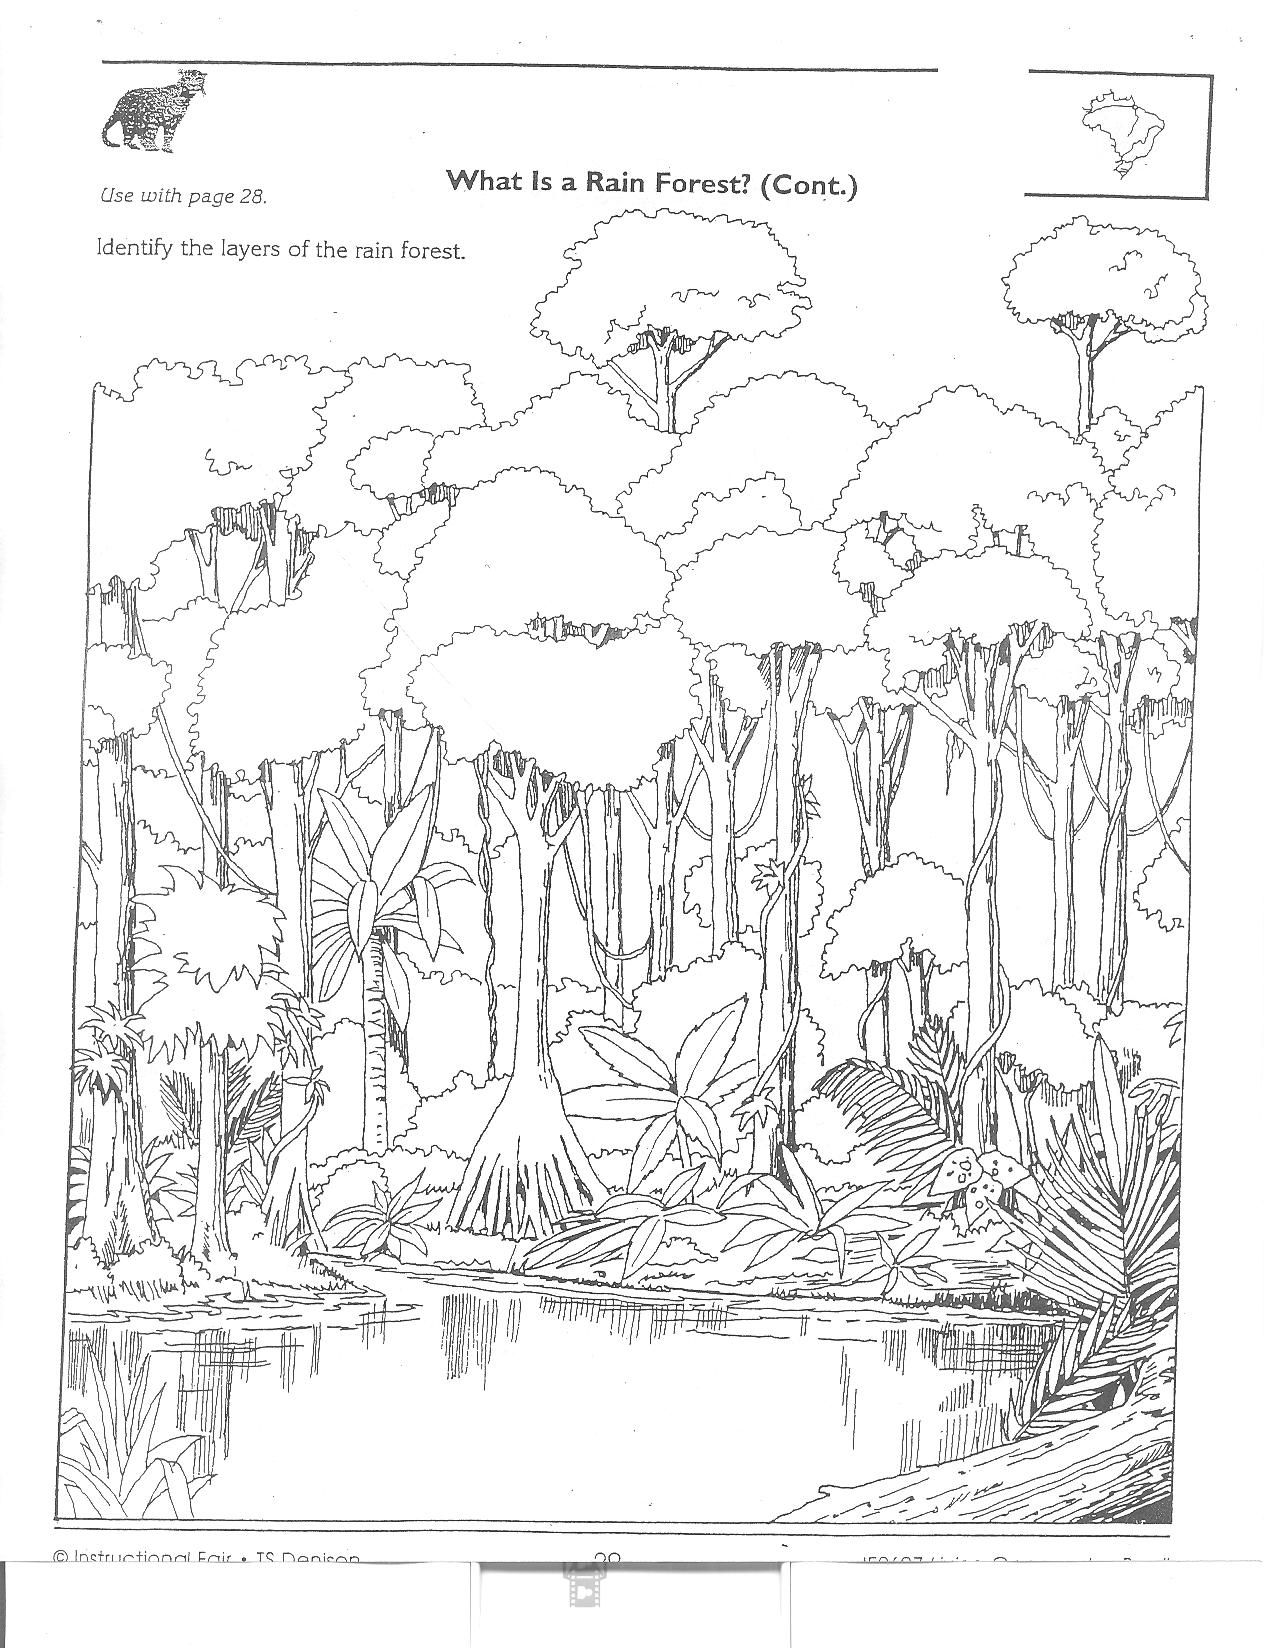 Coloring pages rainforest - Amazon Rainforest Packet 2 Jpg 1264 1648 Amazon Rainforest Animalsadult Coloring Pagesrainforestsamazons